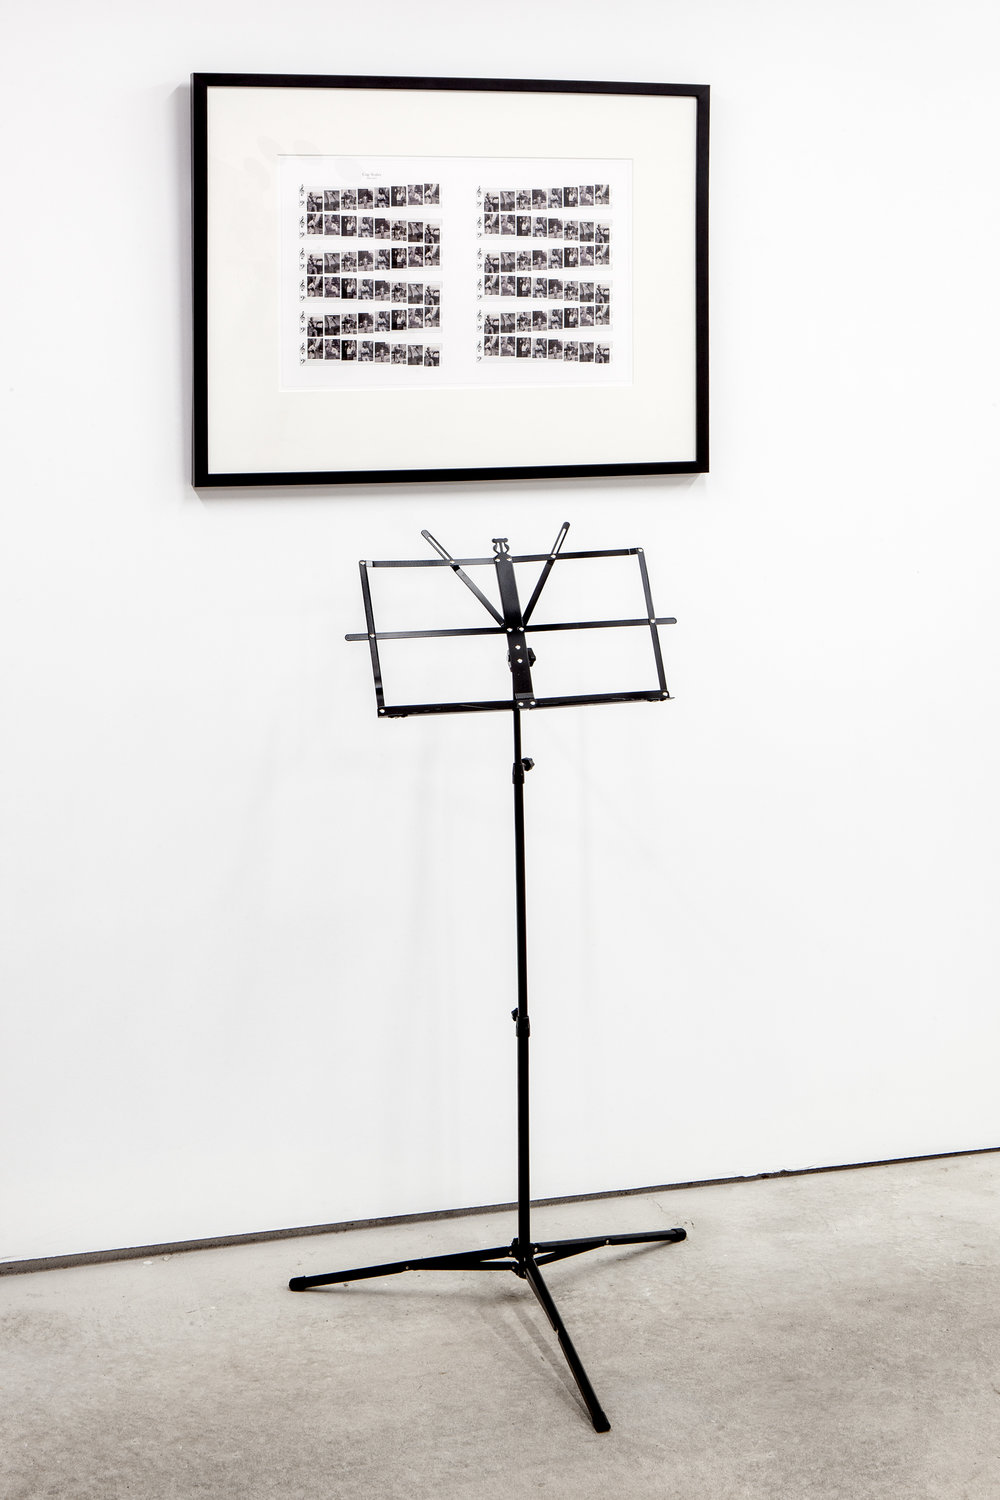 Barbara Bloom (b. Los Angeles, California, 1951),  Song: Gap Scales (me too) , 2008. Archival digital print and music stand. Framed Dimensions: 24 x 30 inches (variable for stand placement). Edition AP 1 of 2. Courtesy David Lewis Gallery, New York. Photo: Daniel Hojnacki.